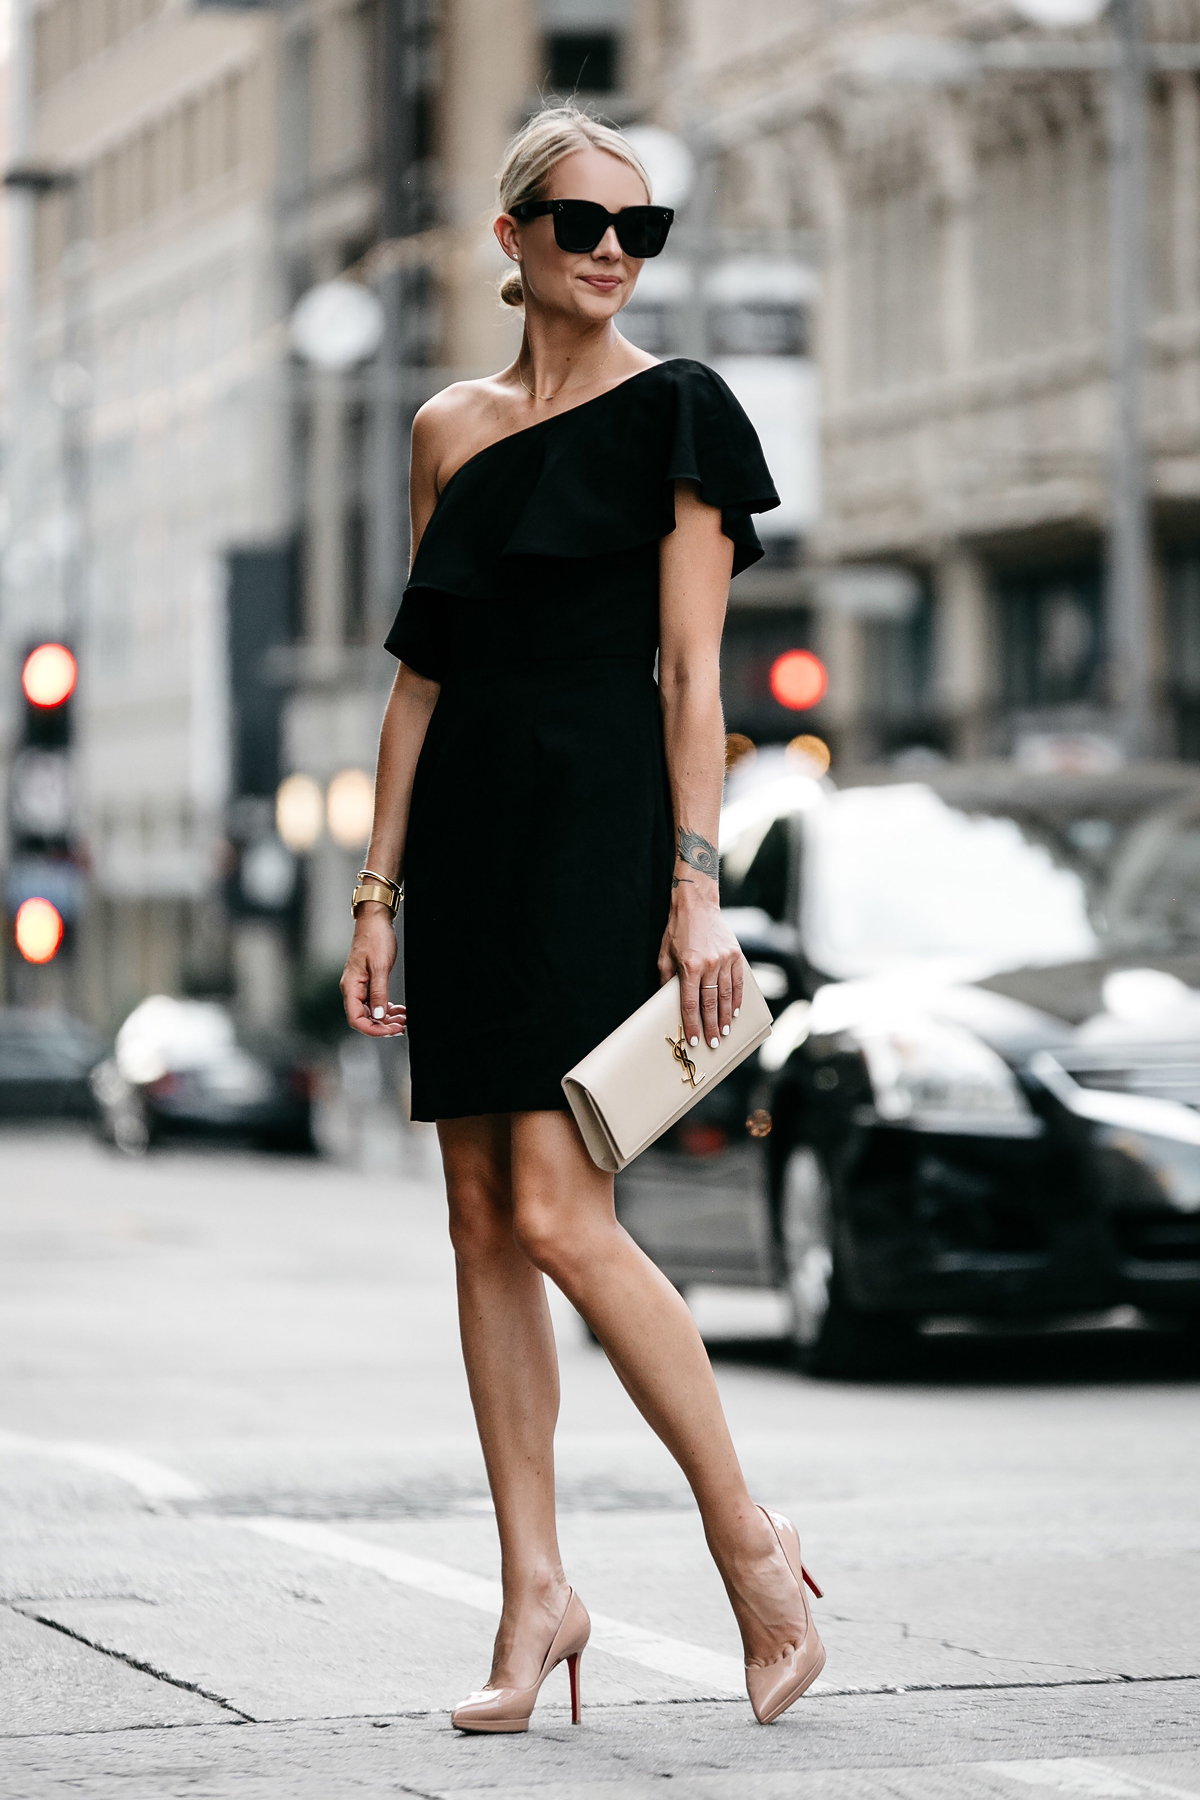 Blonde Wearing Nordstrom Black One Shoulder Ruffle Dress Saint Laurent Monogram Clutch Christian Louboutin Nude Pumps Fashion Jackson Dallas Blogger Fashion Blogger Street Style